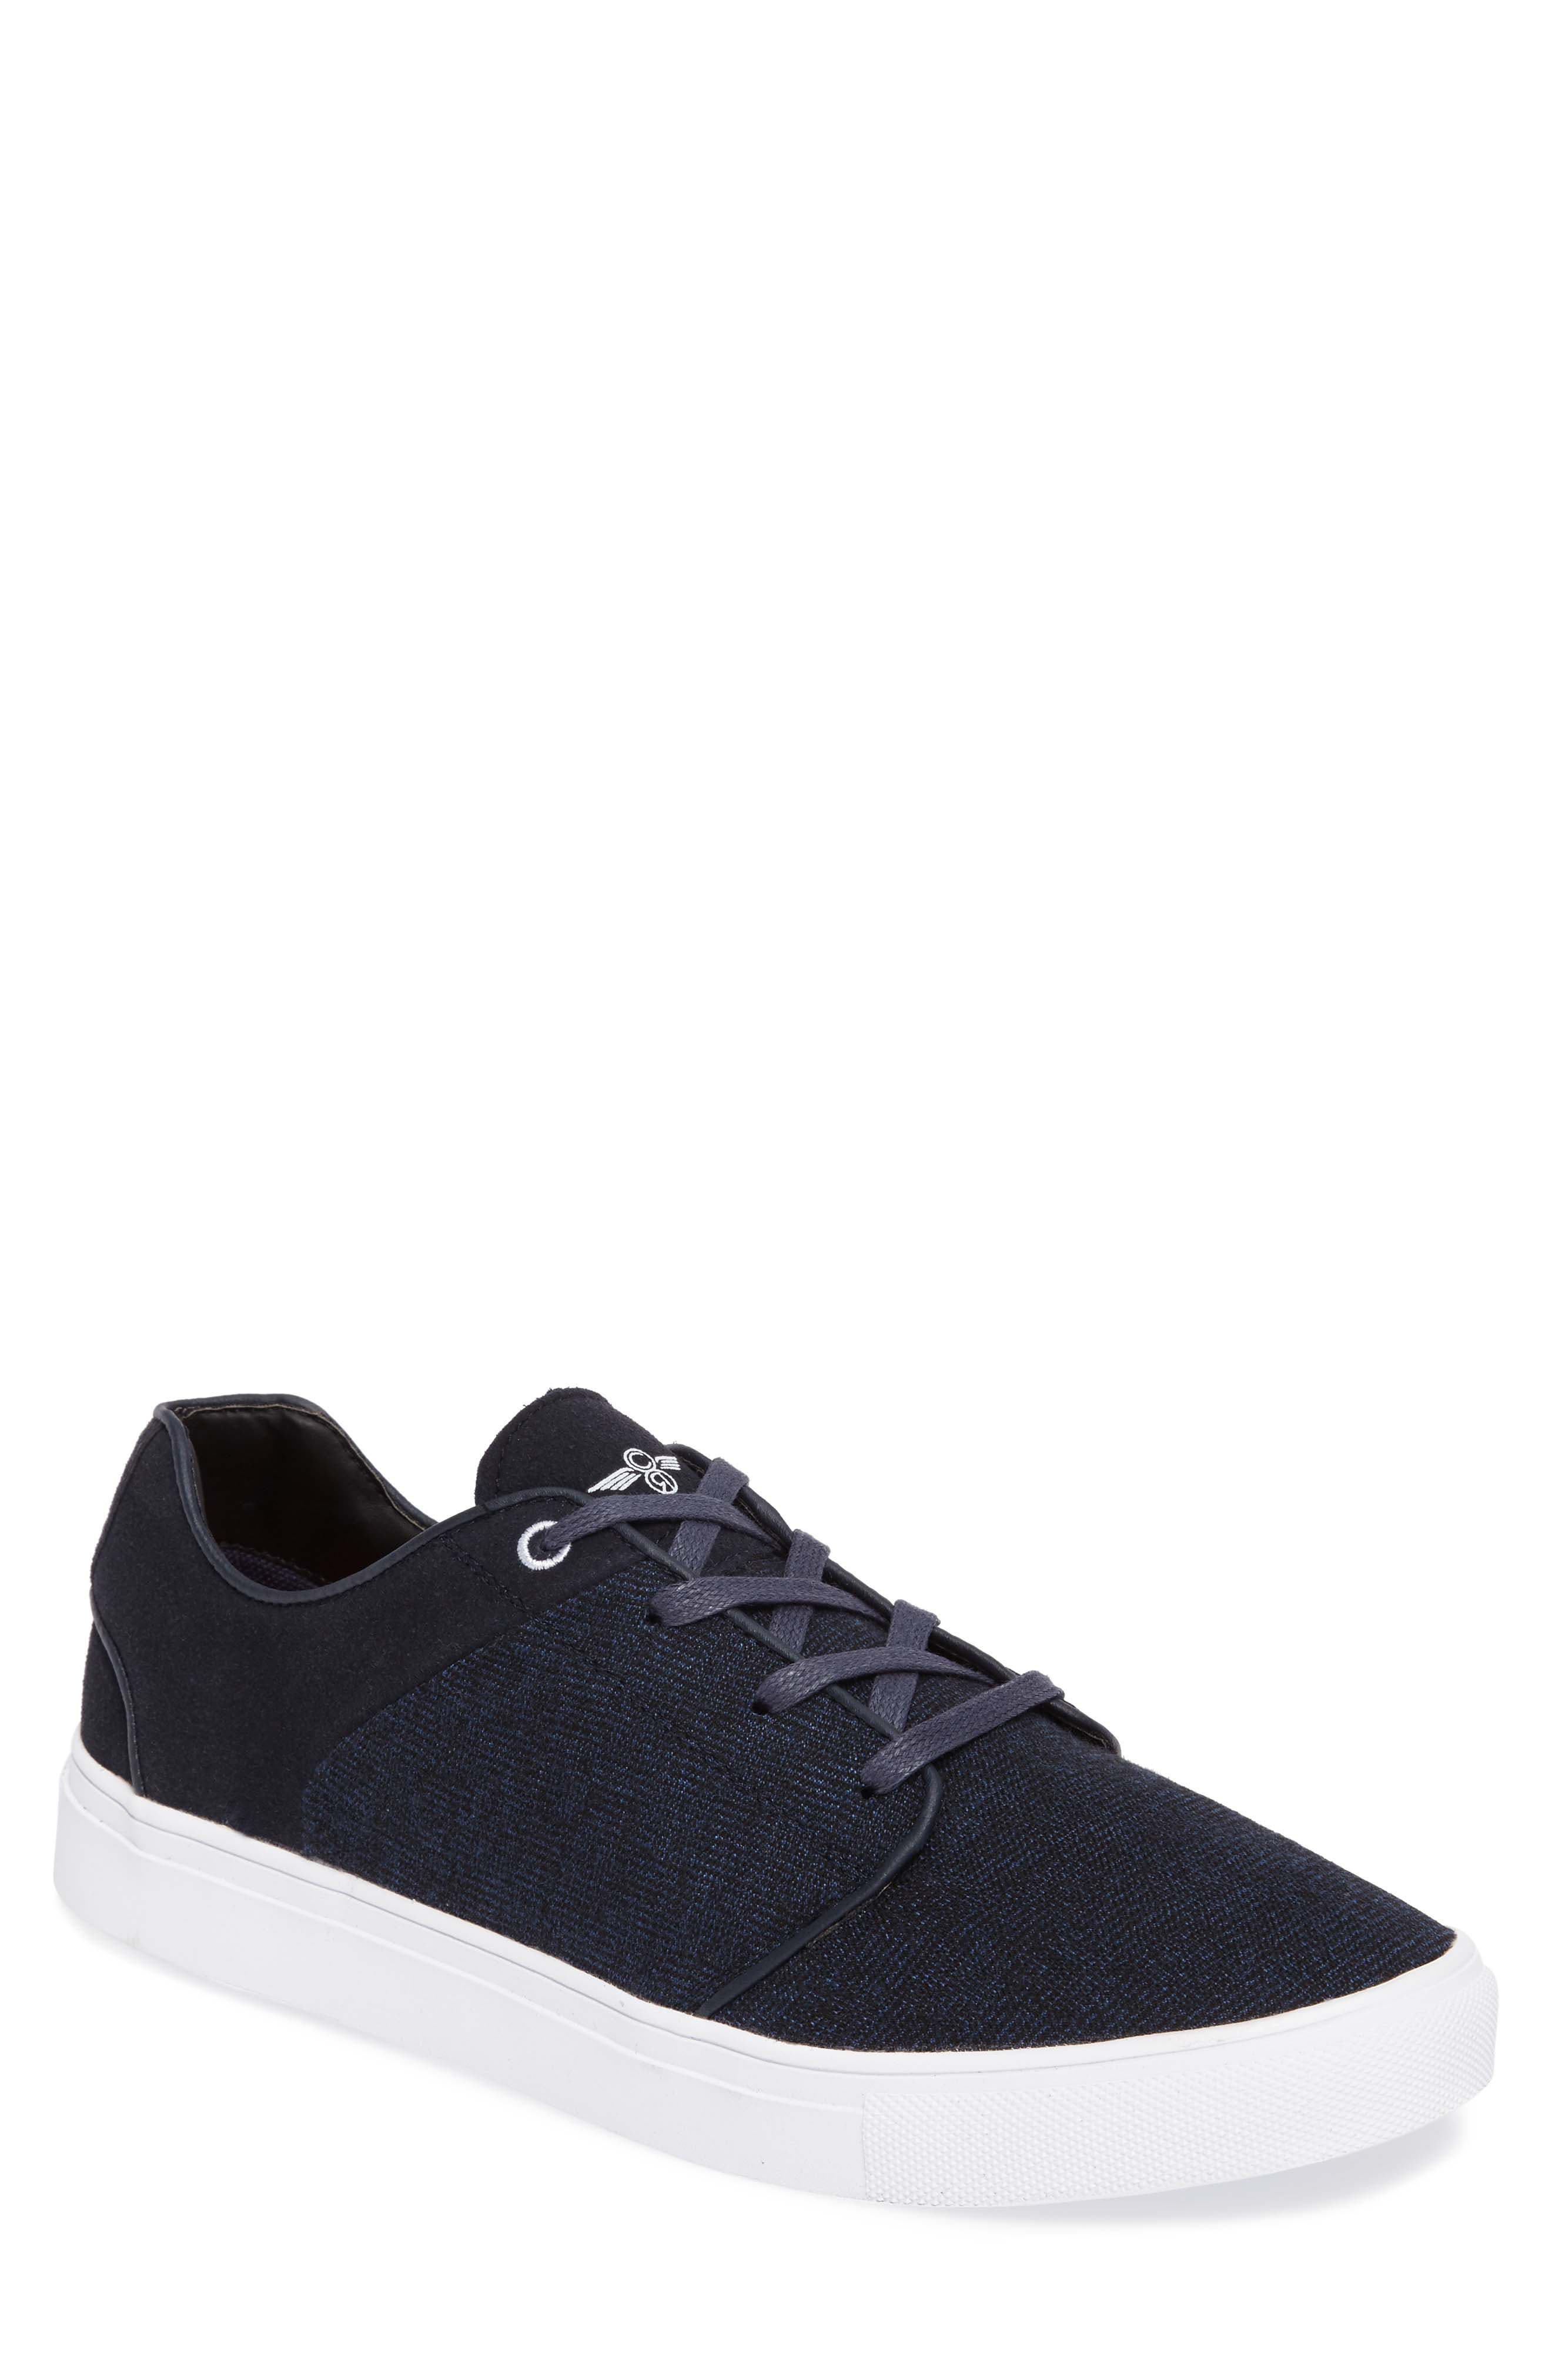 Creative Recreation Nemi Sneaker (Men)